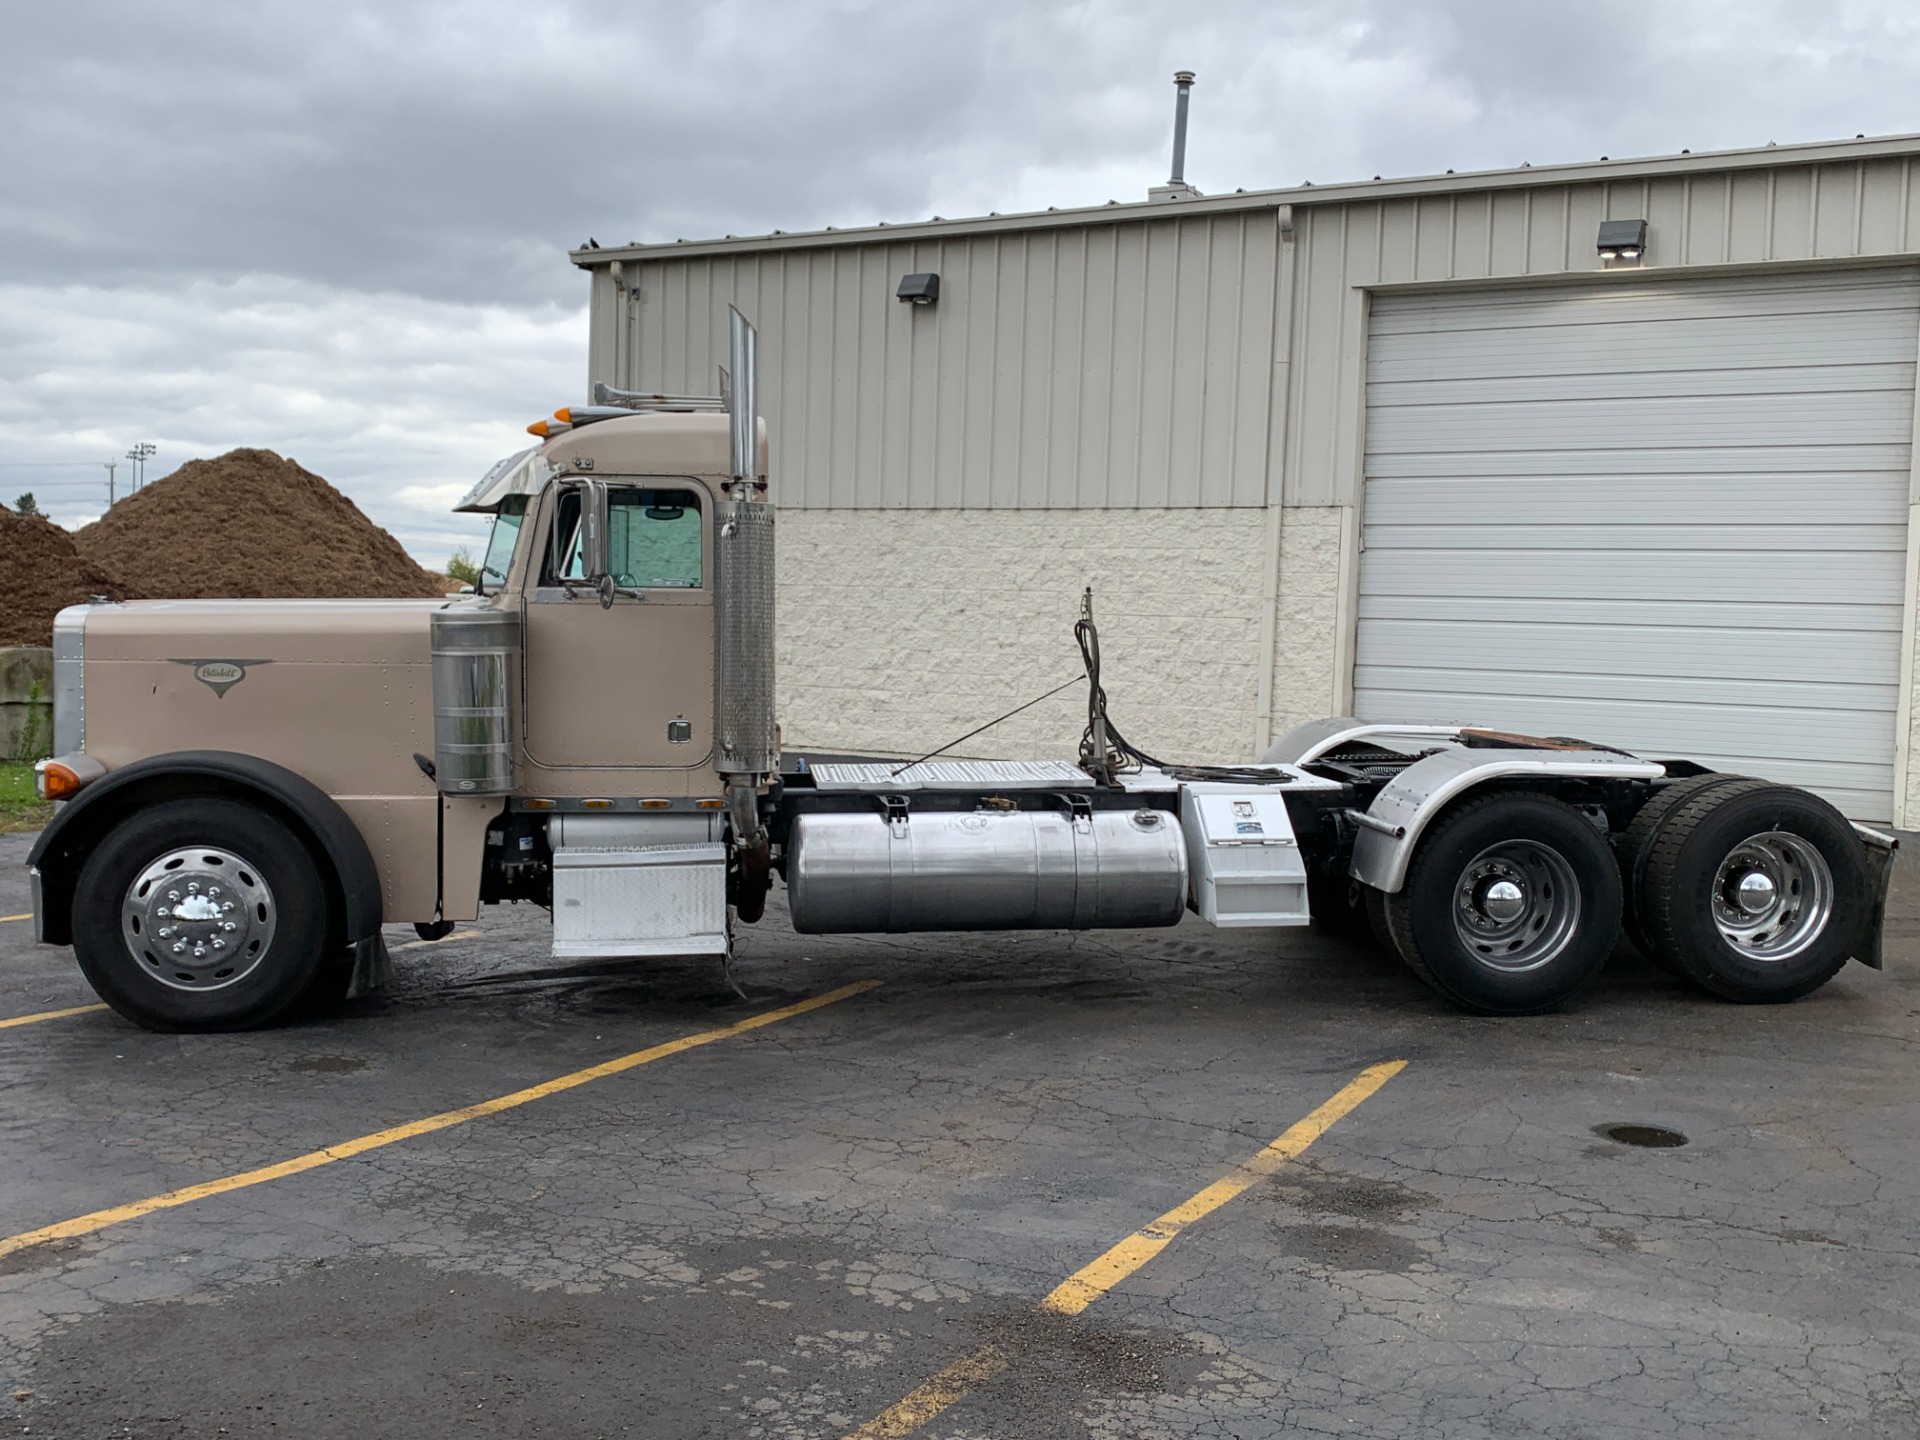 Used 2000 Peterbilt 379 Ultracab Day Cab Cat C15 6nz 475 Hp For Sale Sold Midwest Truck Group Stock 16908